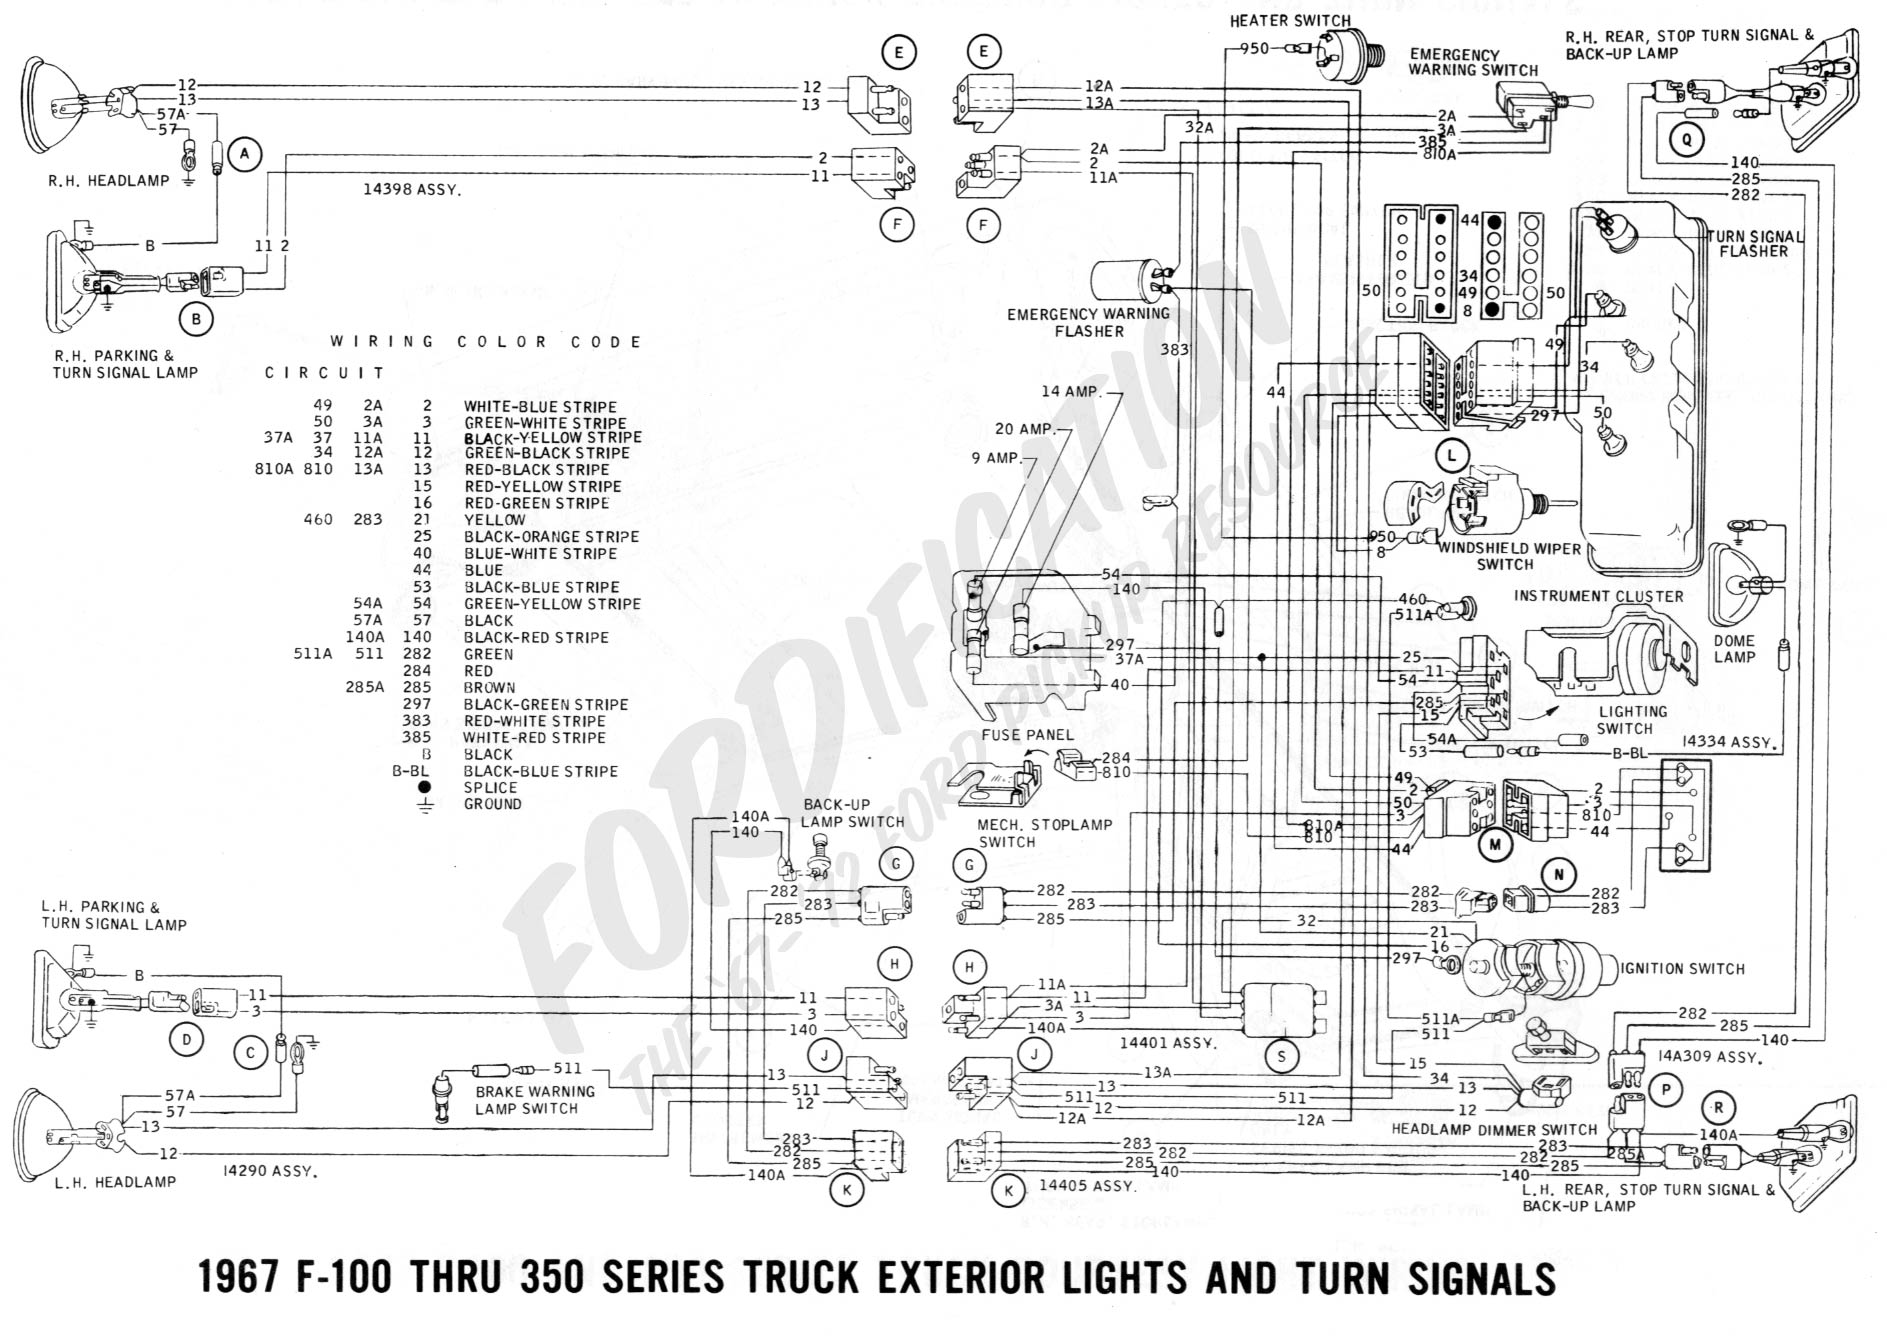 1967 ford f250 wiring diagram easy wiring diagrams u2022 rh art isere com